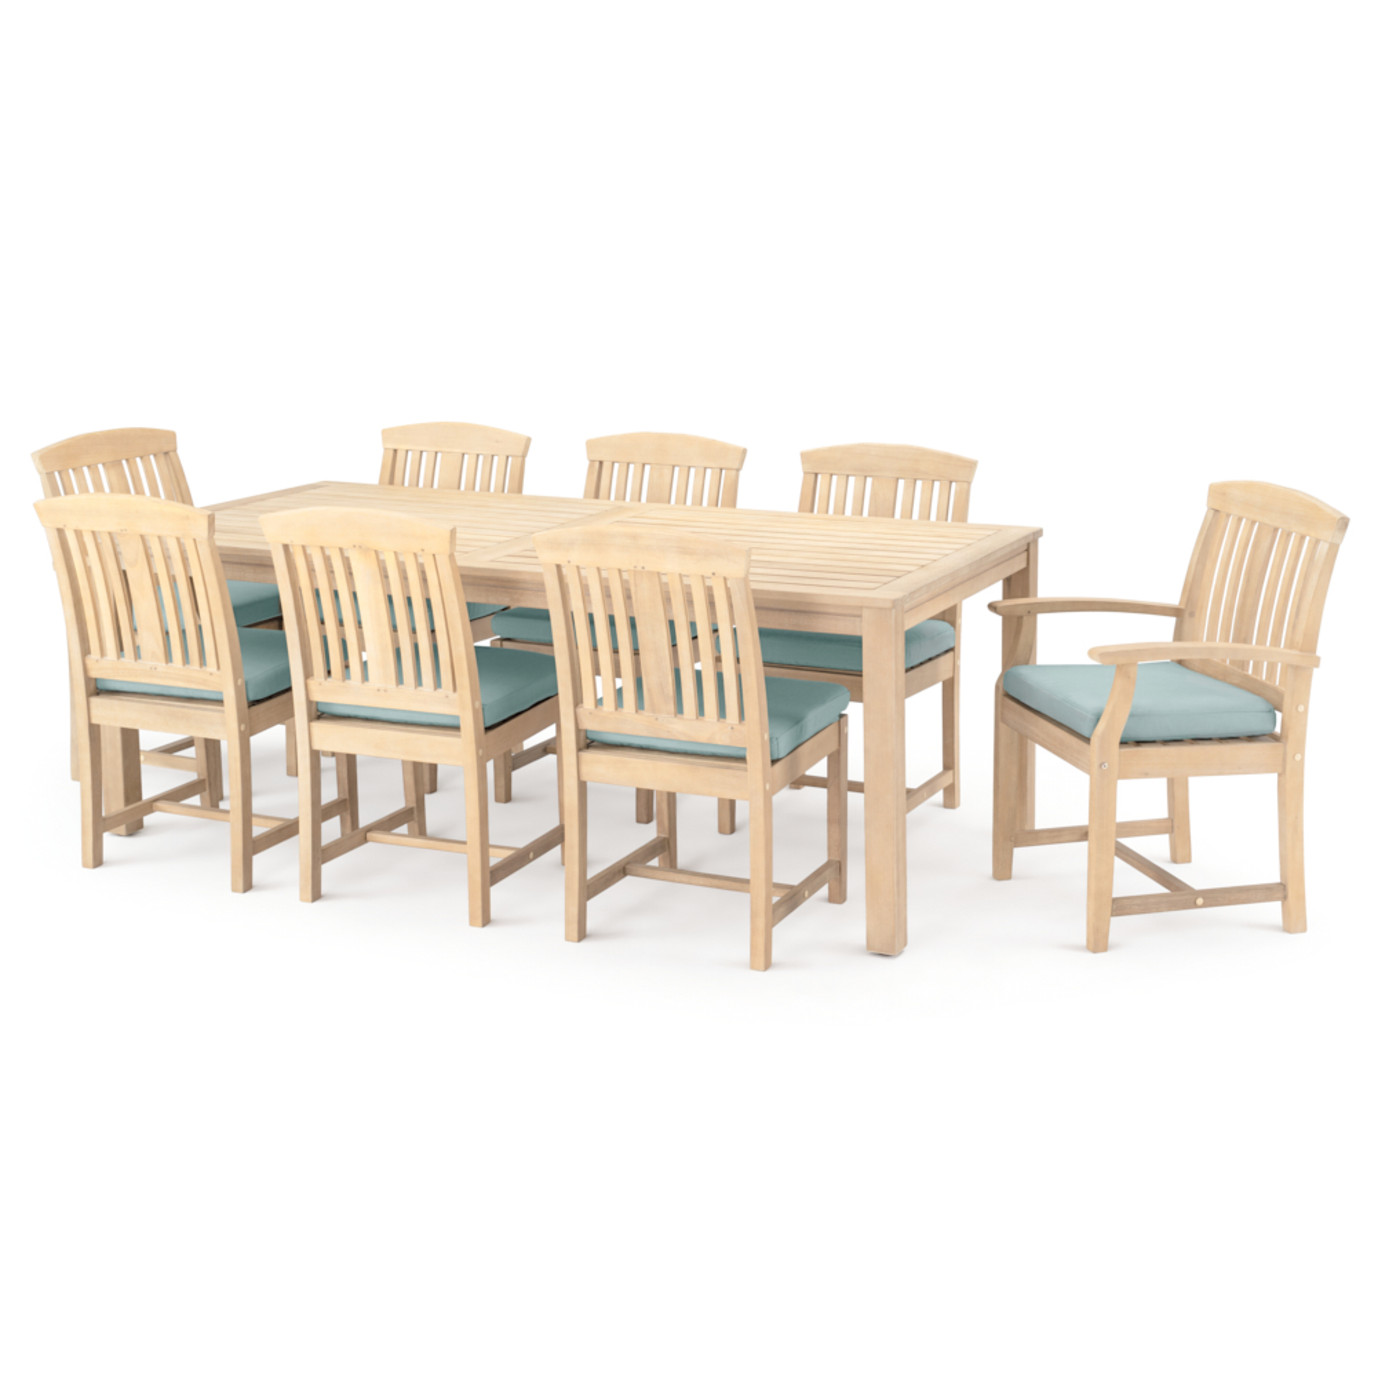 Kooper 9 Piece Outdoor Dining Set - Spa Blue